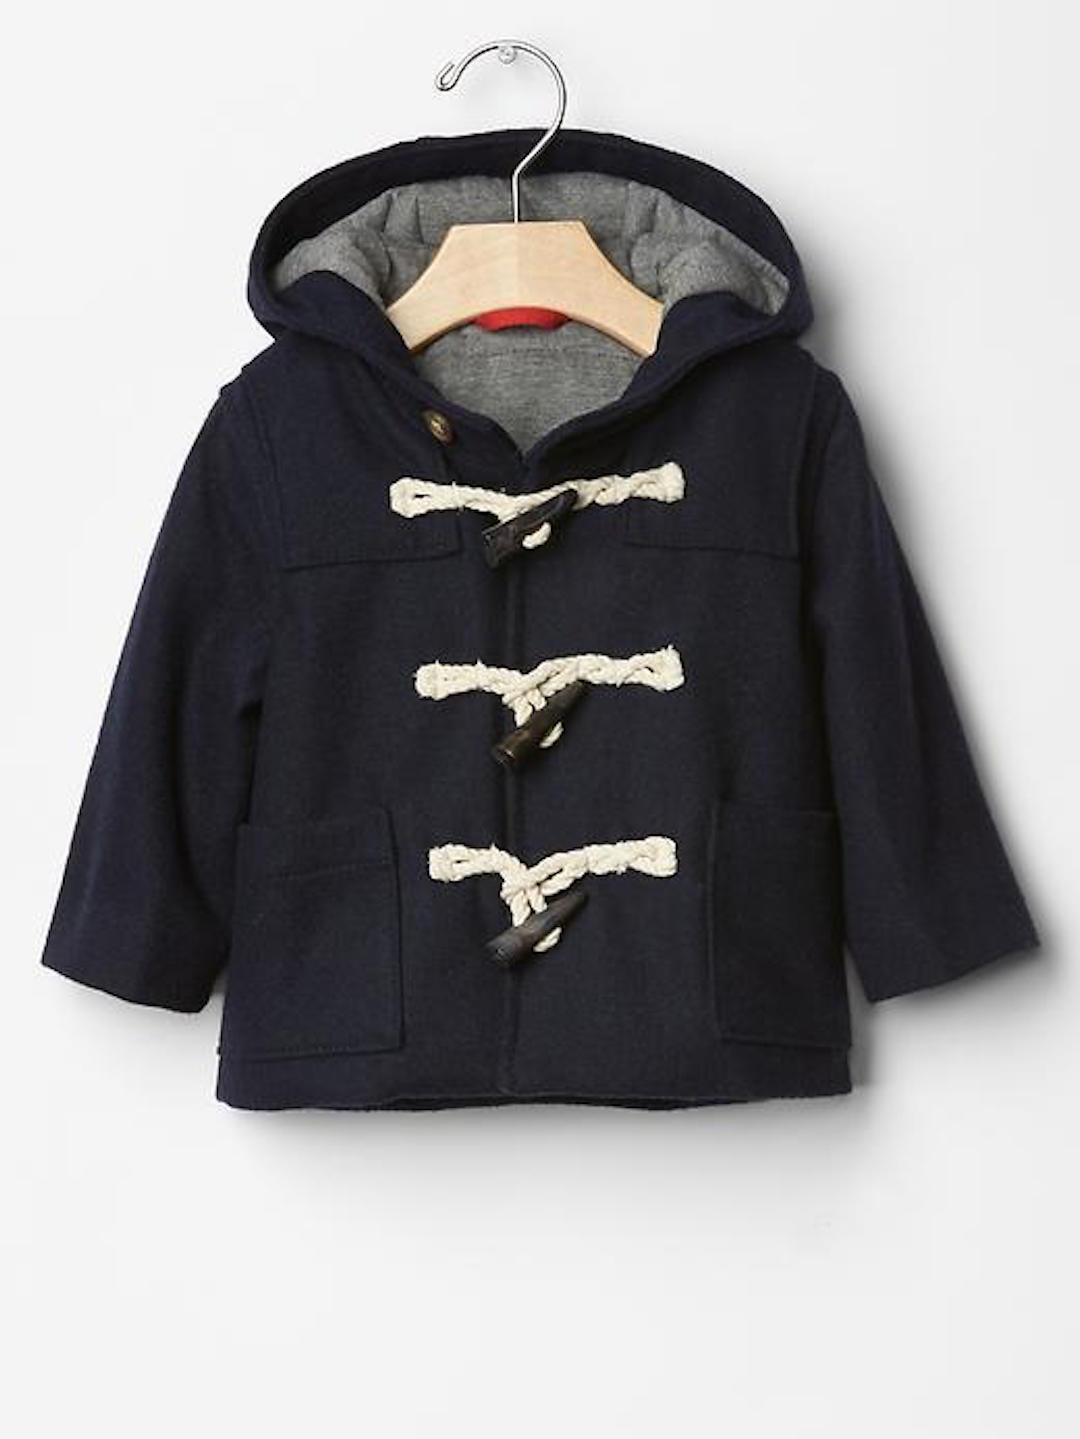 Baby Gap Navy Uniform Duffle Coat 50 Polyester 40 Wool 6 Rayon 4 ...